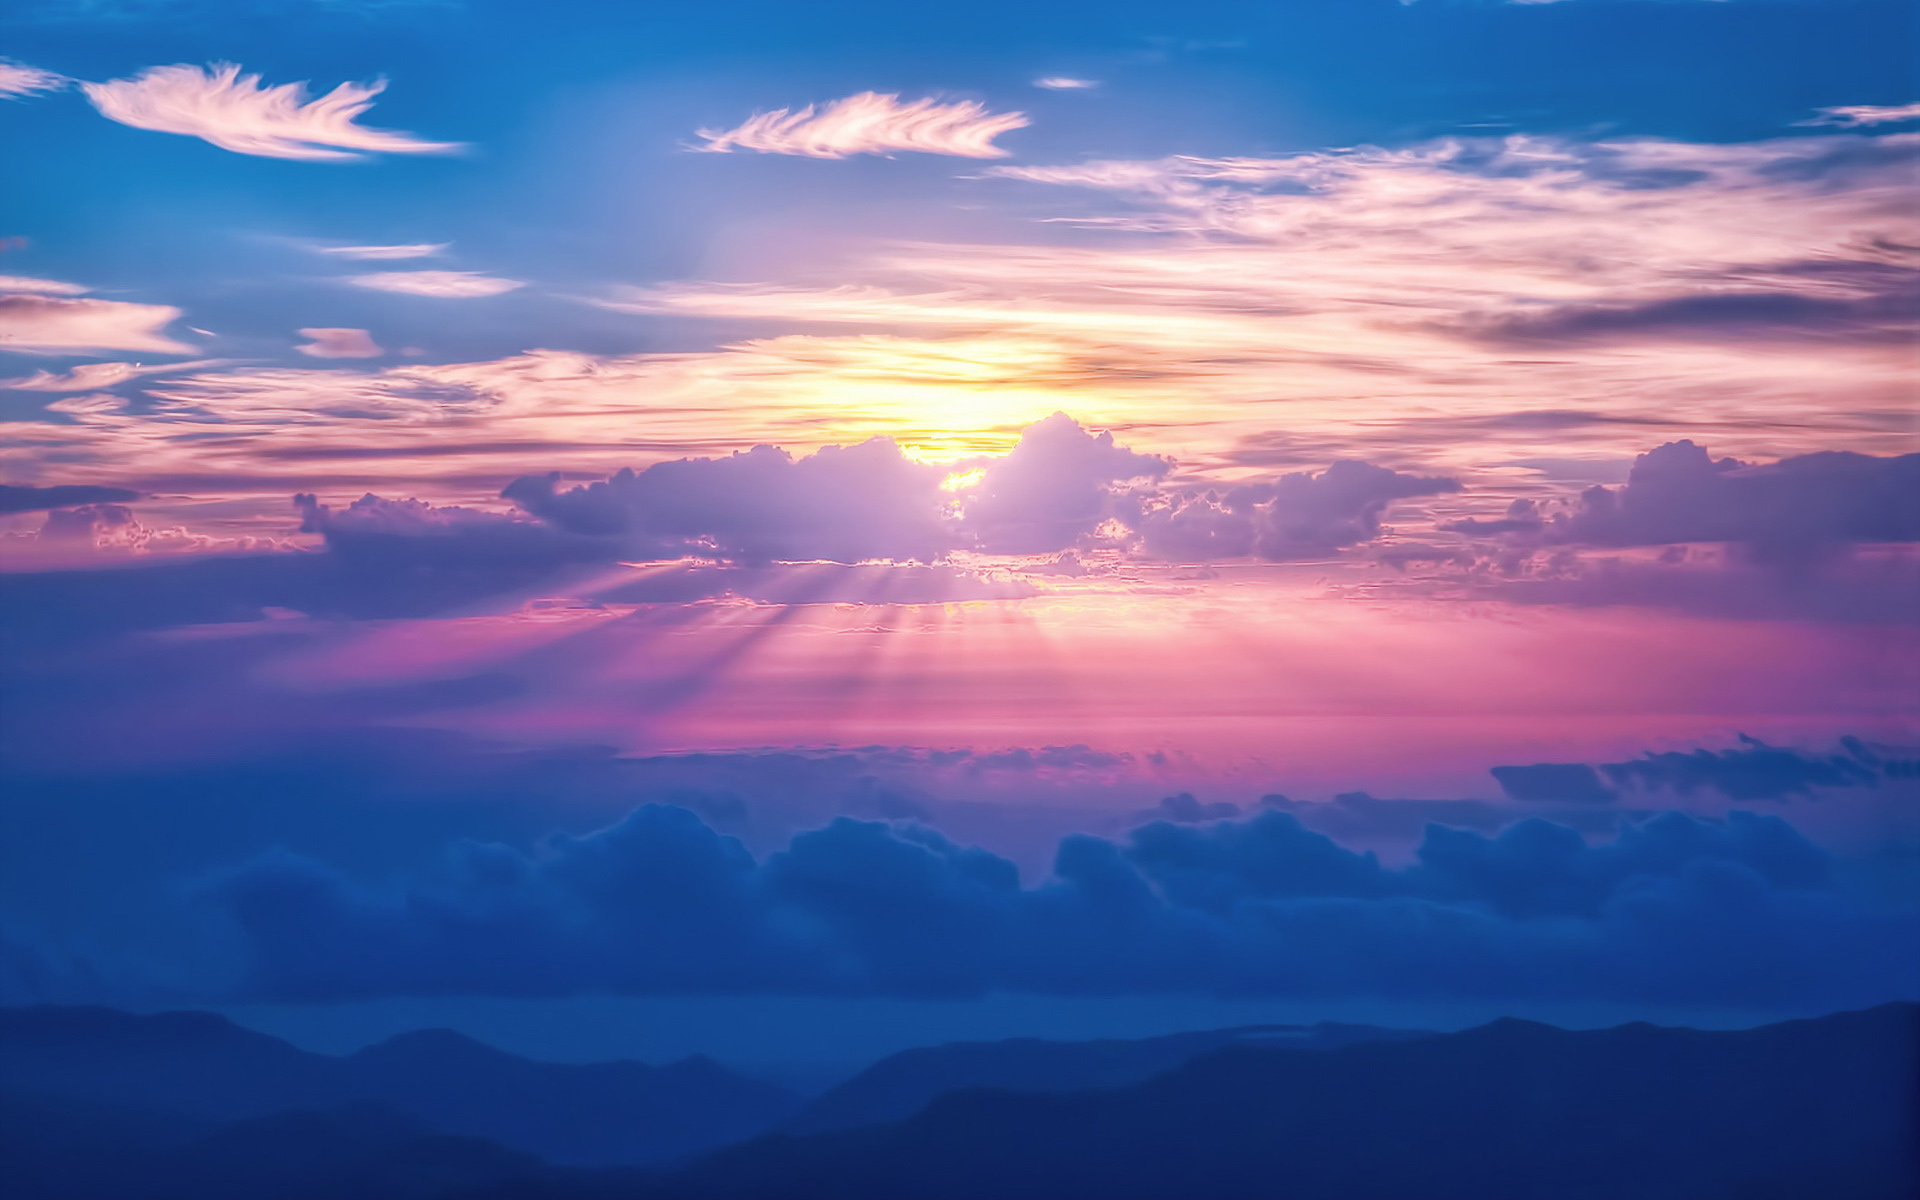 Ultra Hd 4k Wallpapers For Iphone Sunrays Sky Clouds Wallpapers Hd Wallpapers Id 16613